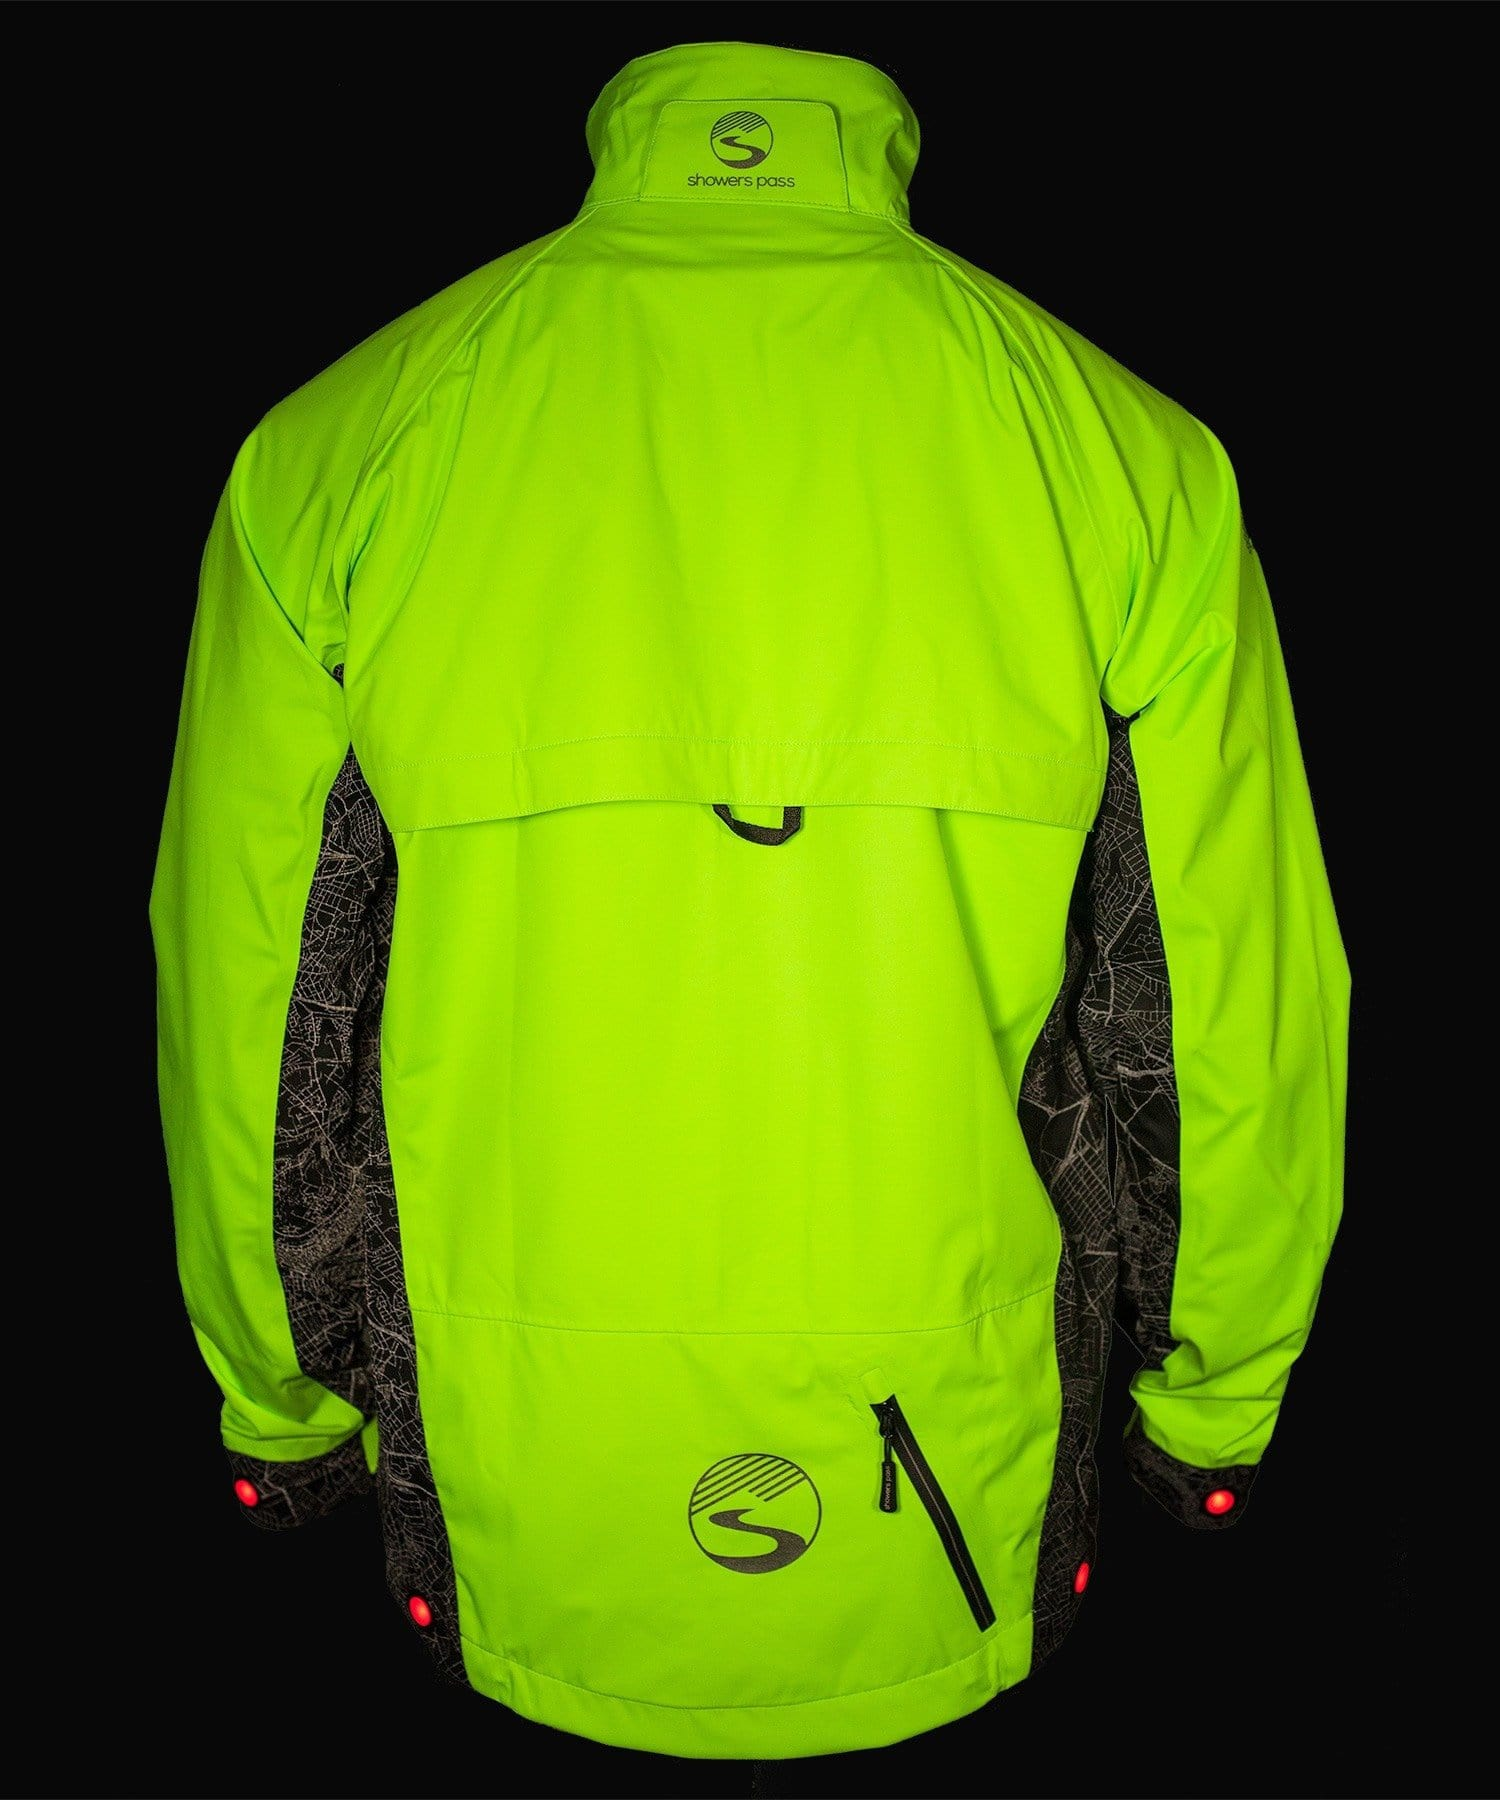 harmonious colors best online exceptional range of colors Men's Hi-Vis Elite E-Bike Jacket - with Red LED Beacon Lights